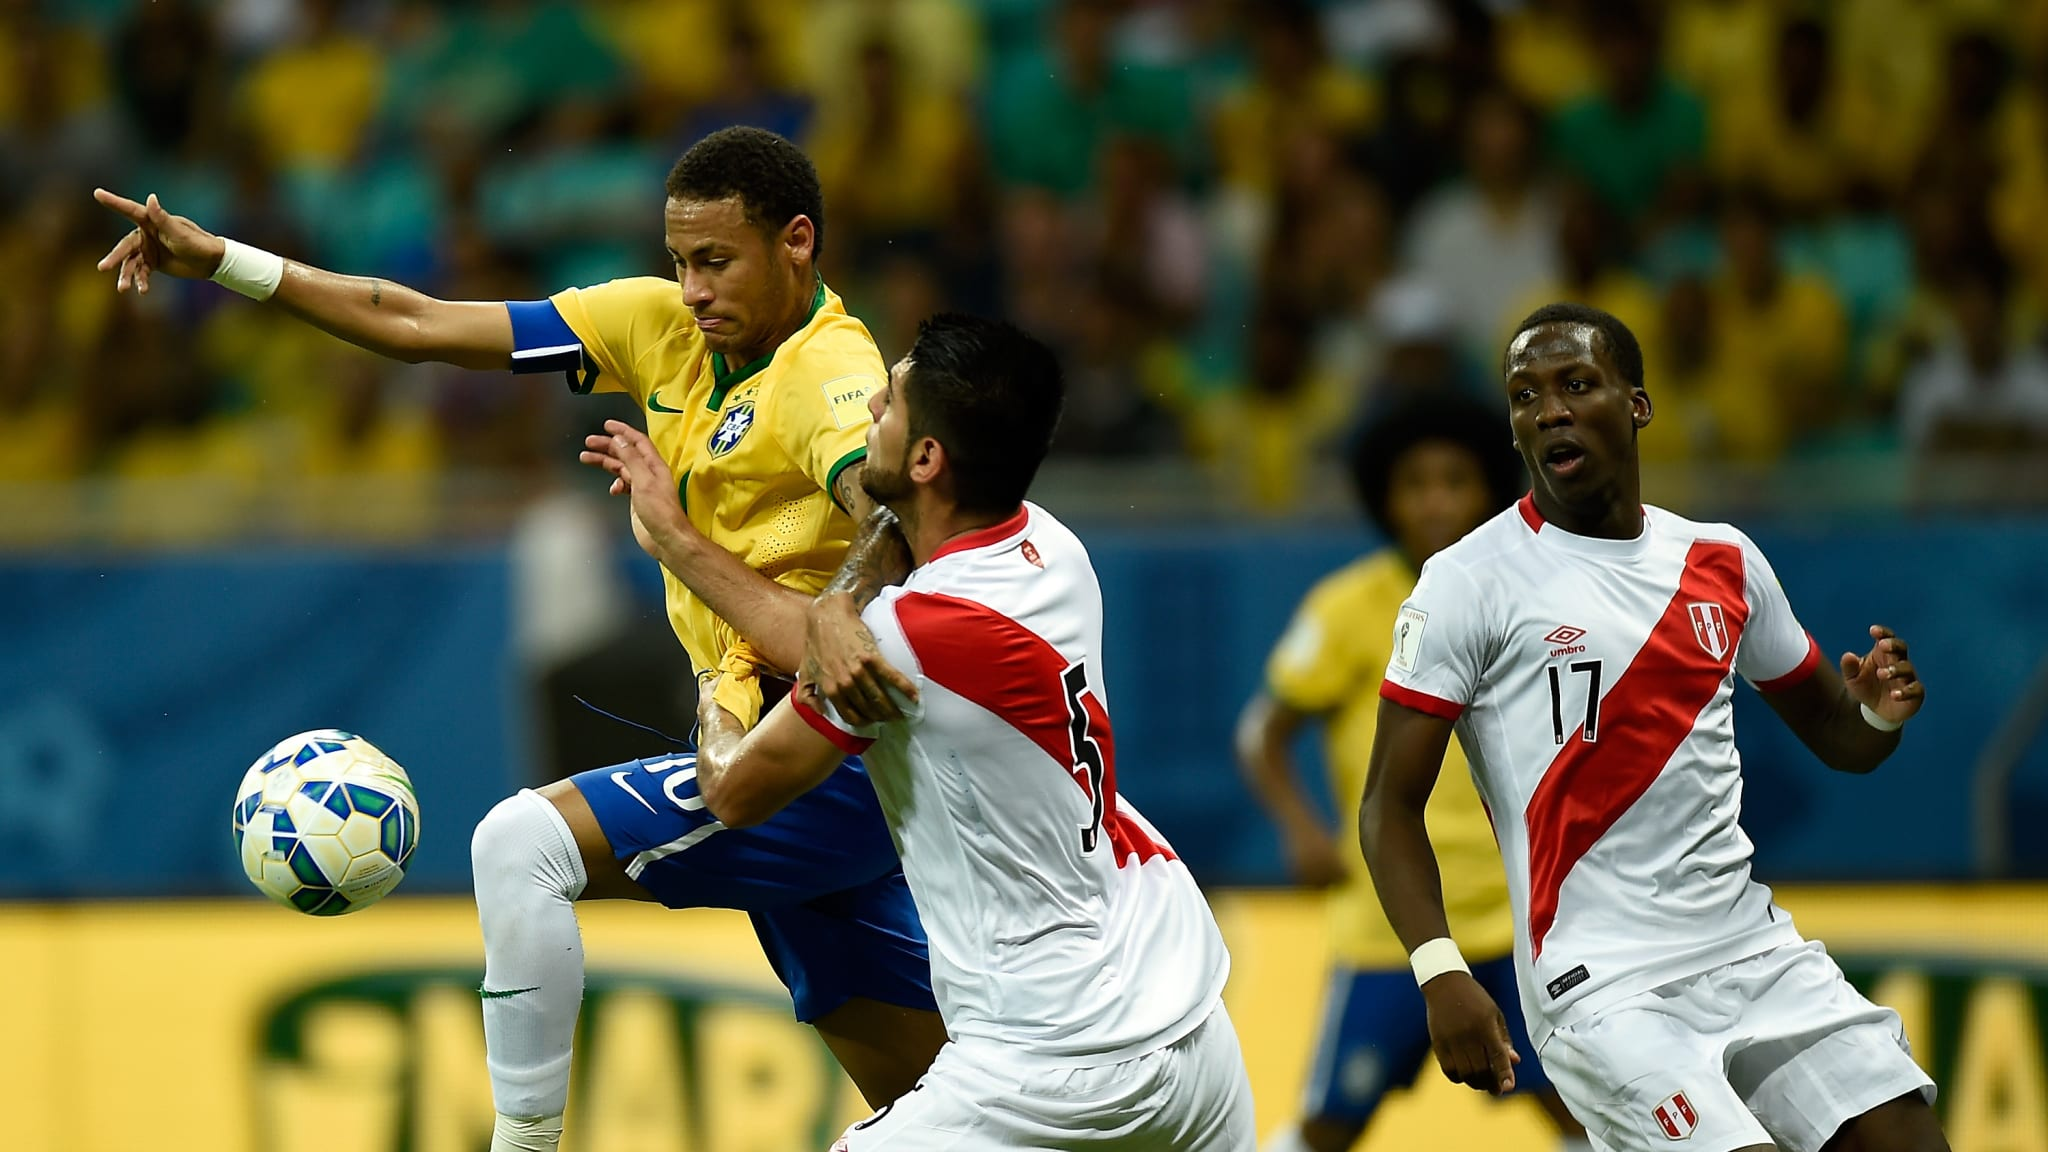 Brazil v Peru - 2018 FIFA World Cup Russia Qualifiers